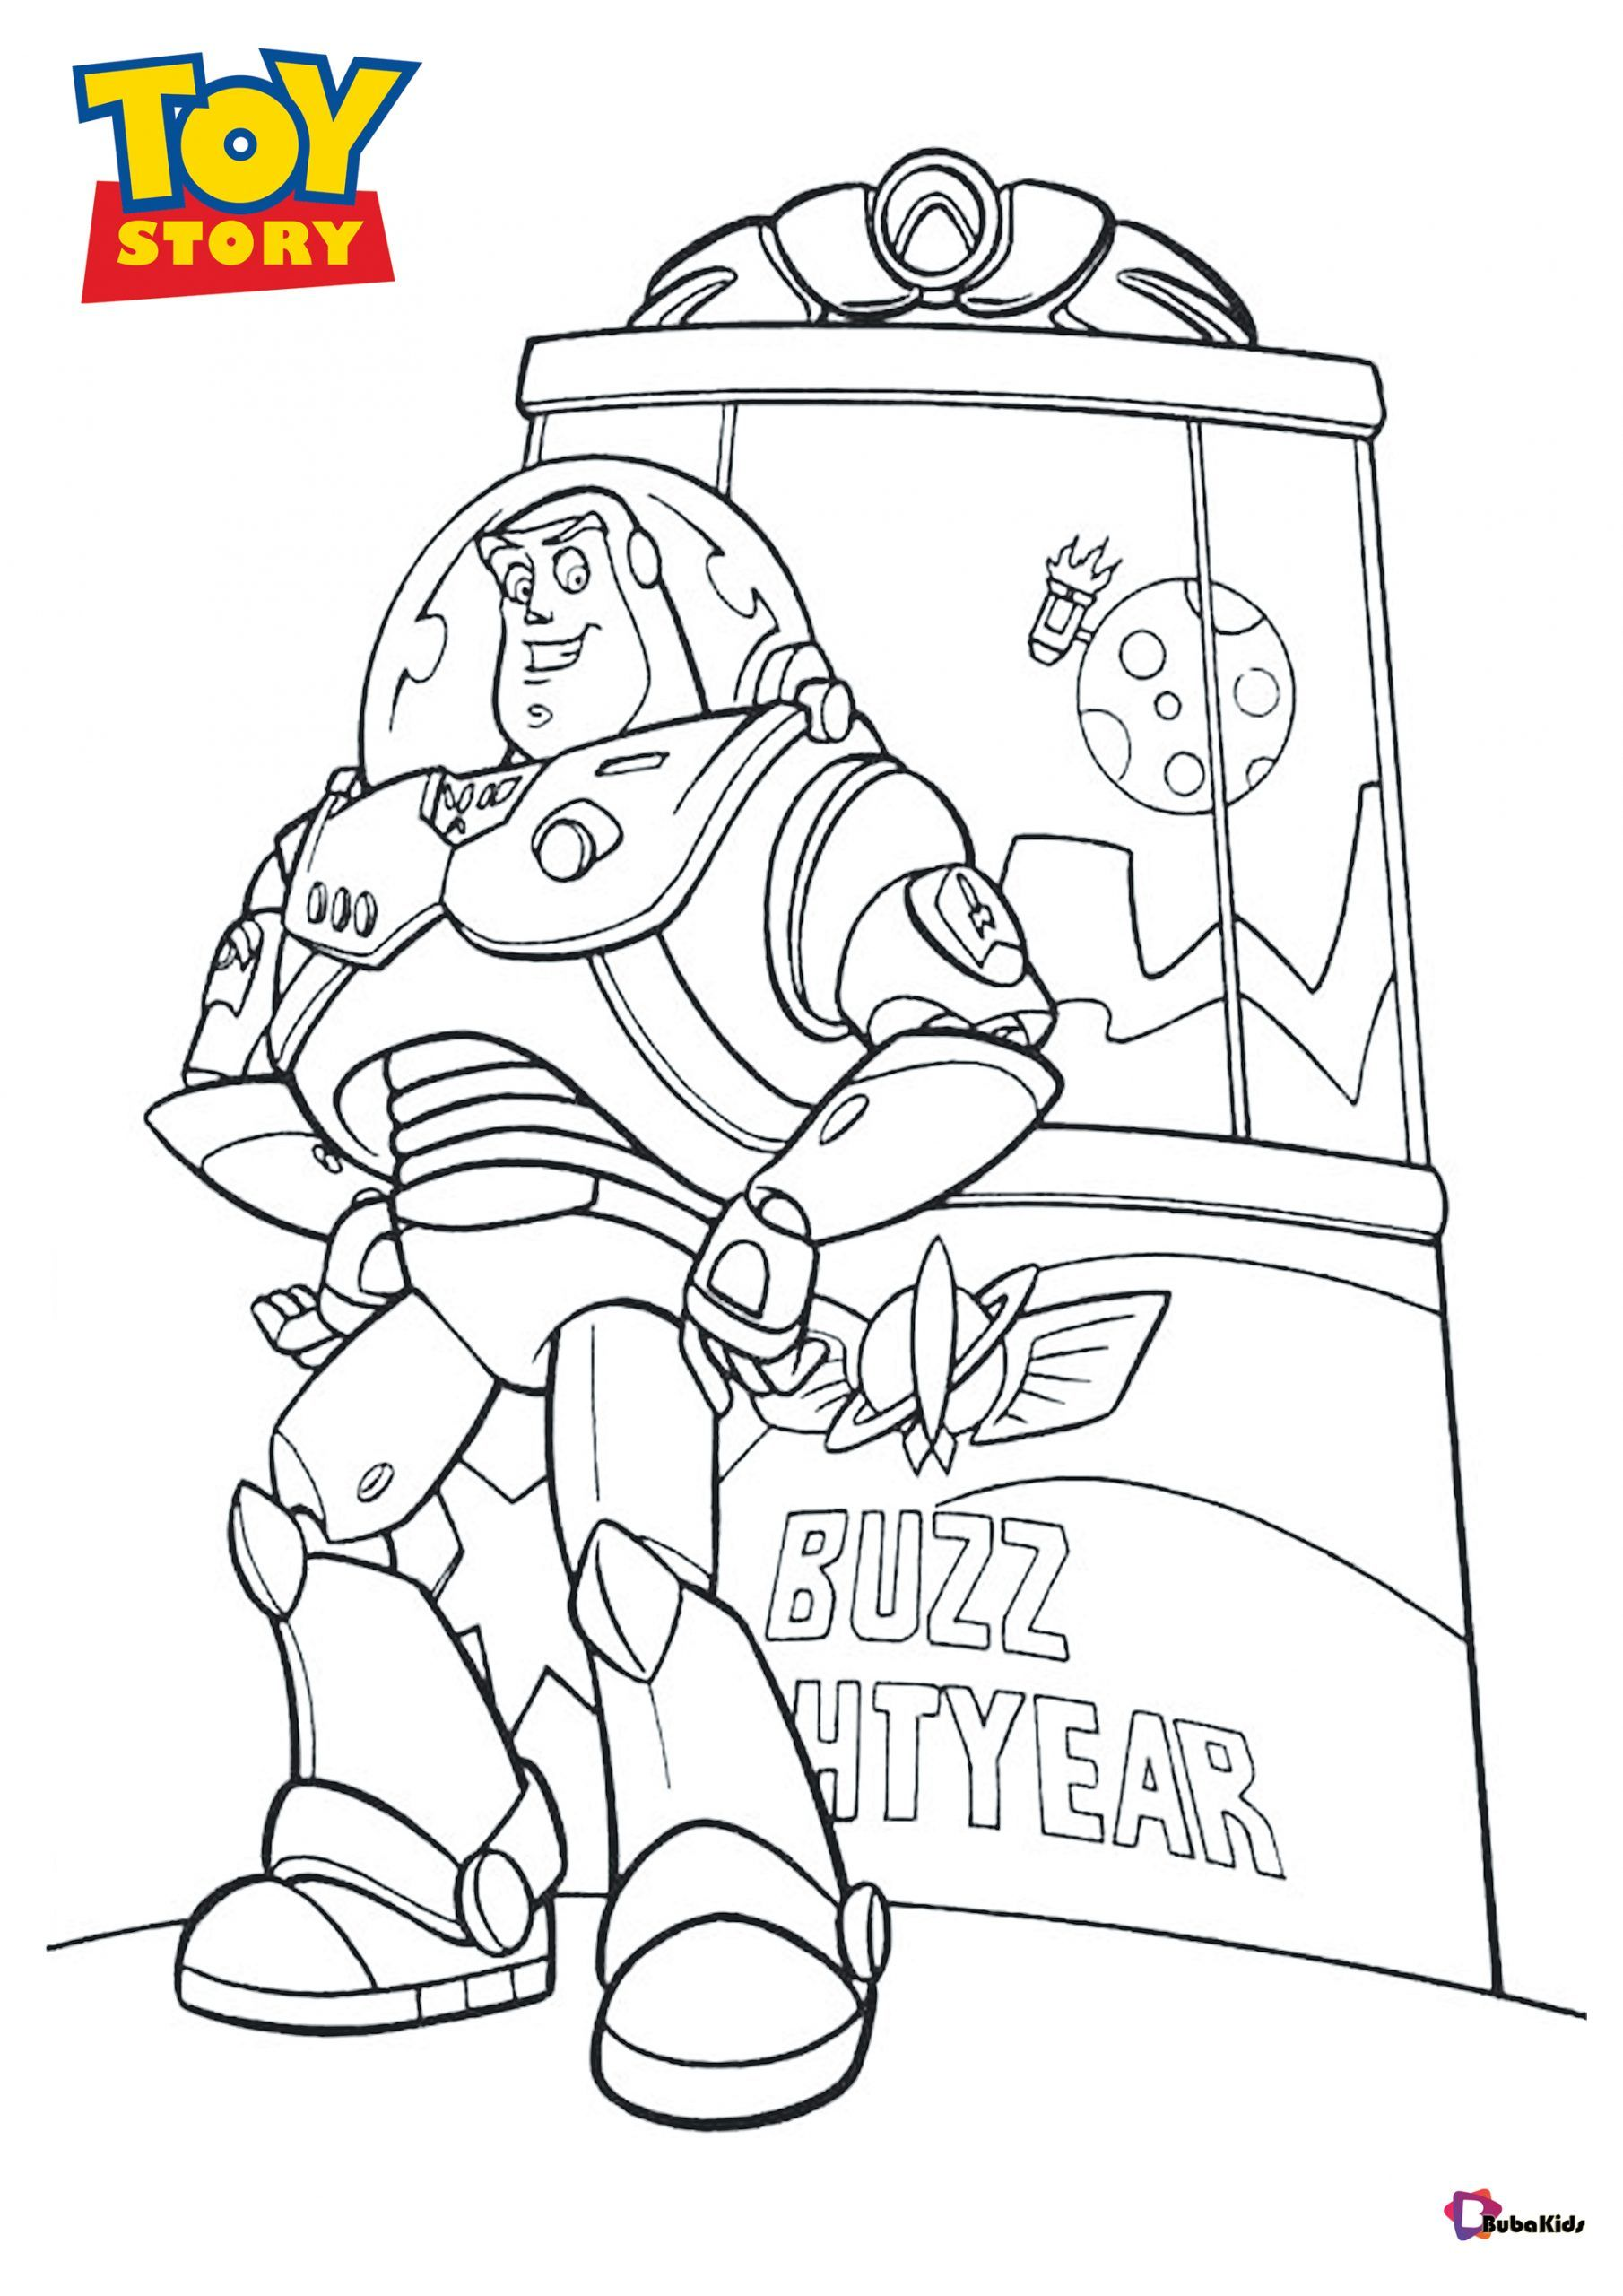 Printable Coloring Pages Of Buzz Lightyear Toy Story Character Collection Of Cartoon Coloring Pages F Cartoon Coloring Pages Coloring Pages Printable Coloring